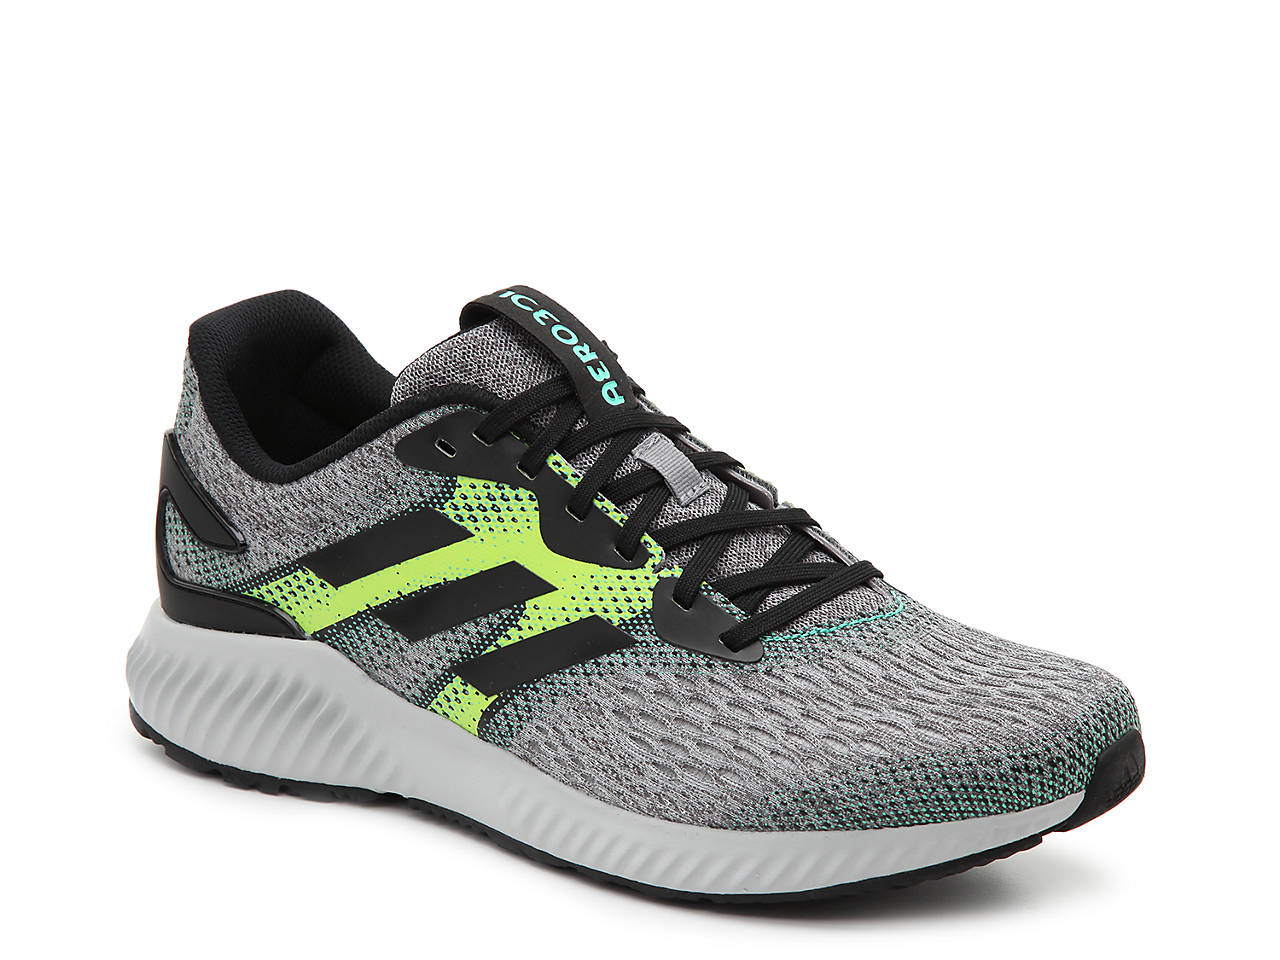 premium selection 24ad5 42027 adidas. Aerobounce Lightweight Running Shoe - Men s